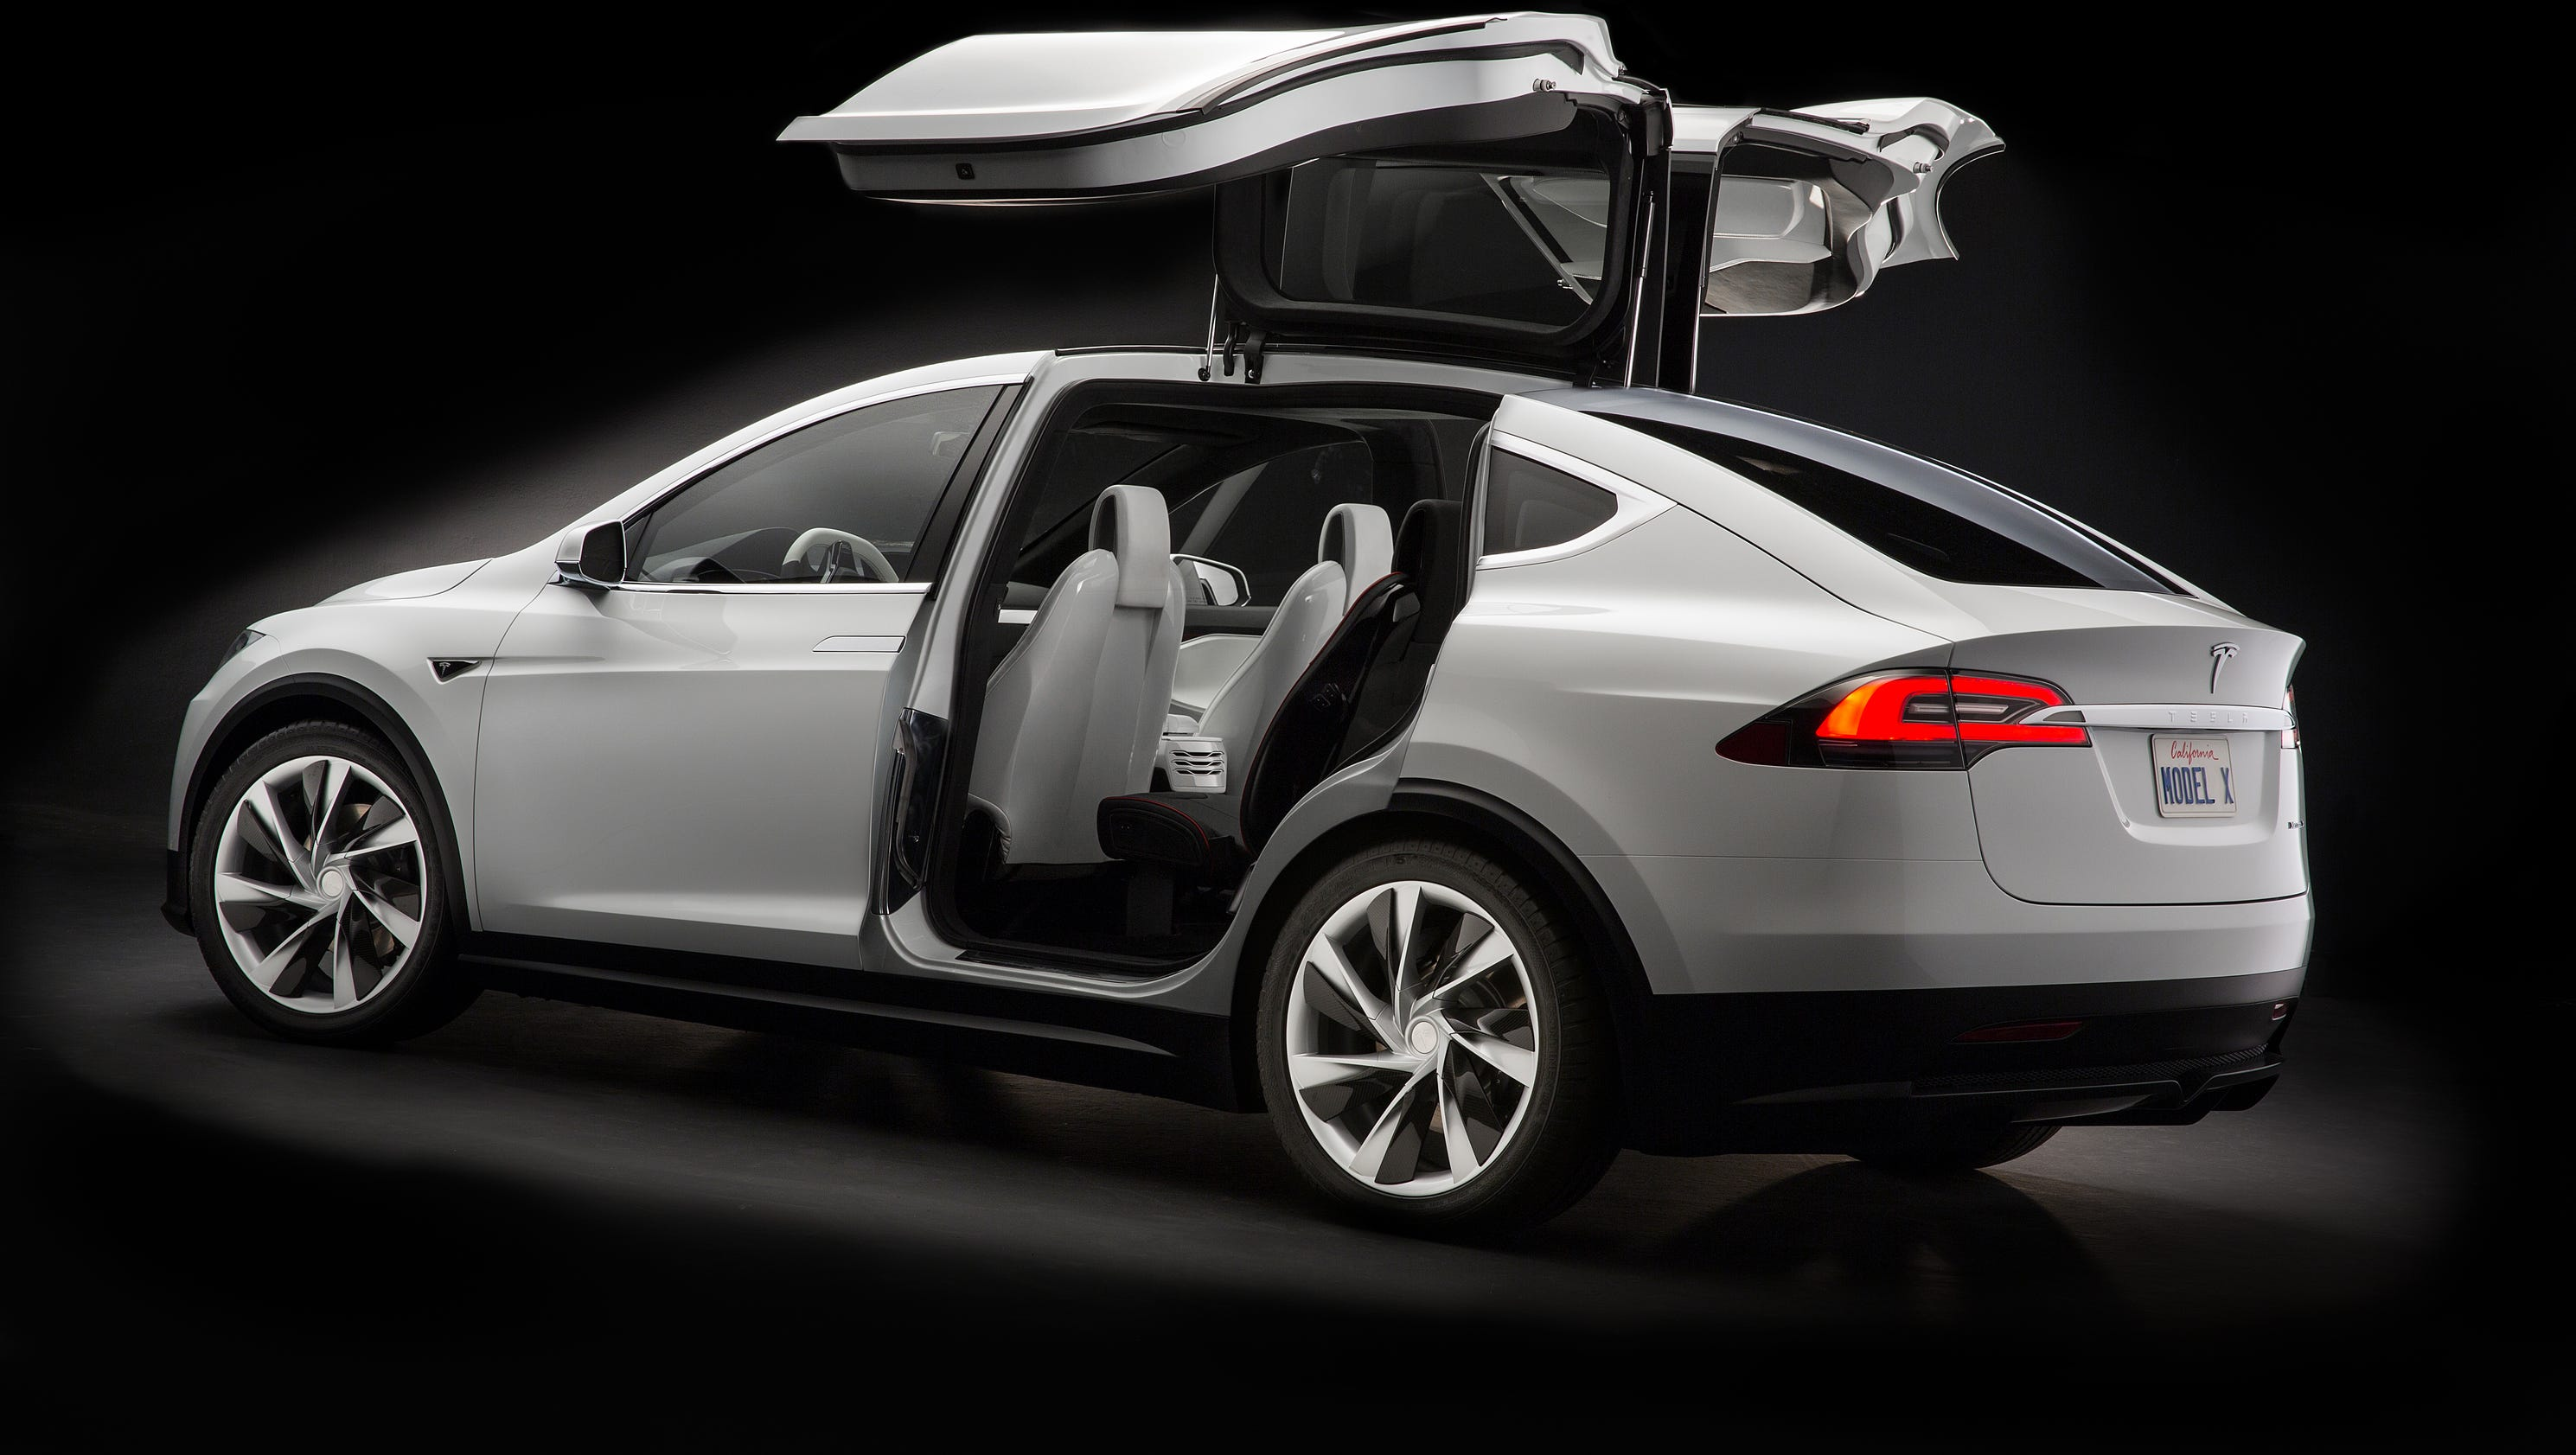 Tesla issuing first recall for Model X crossover SUV